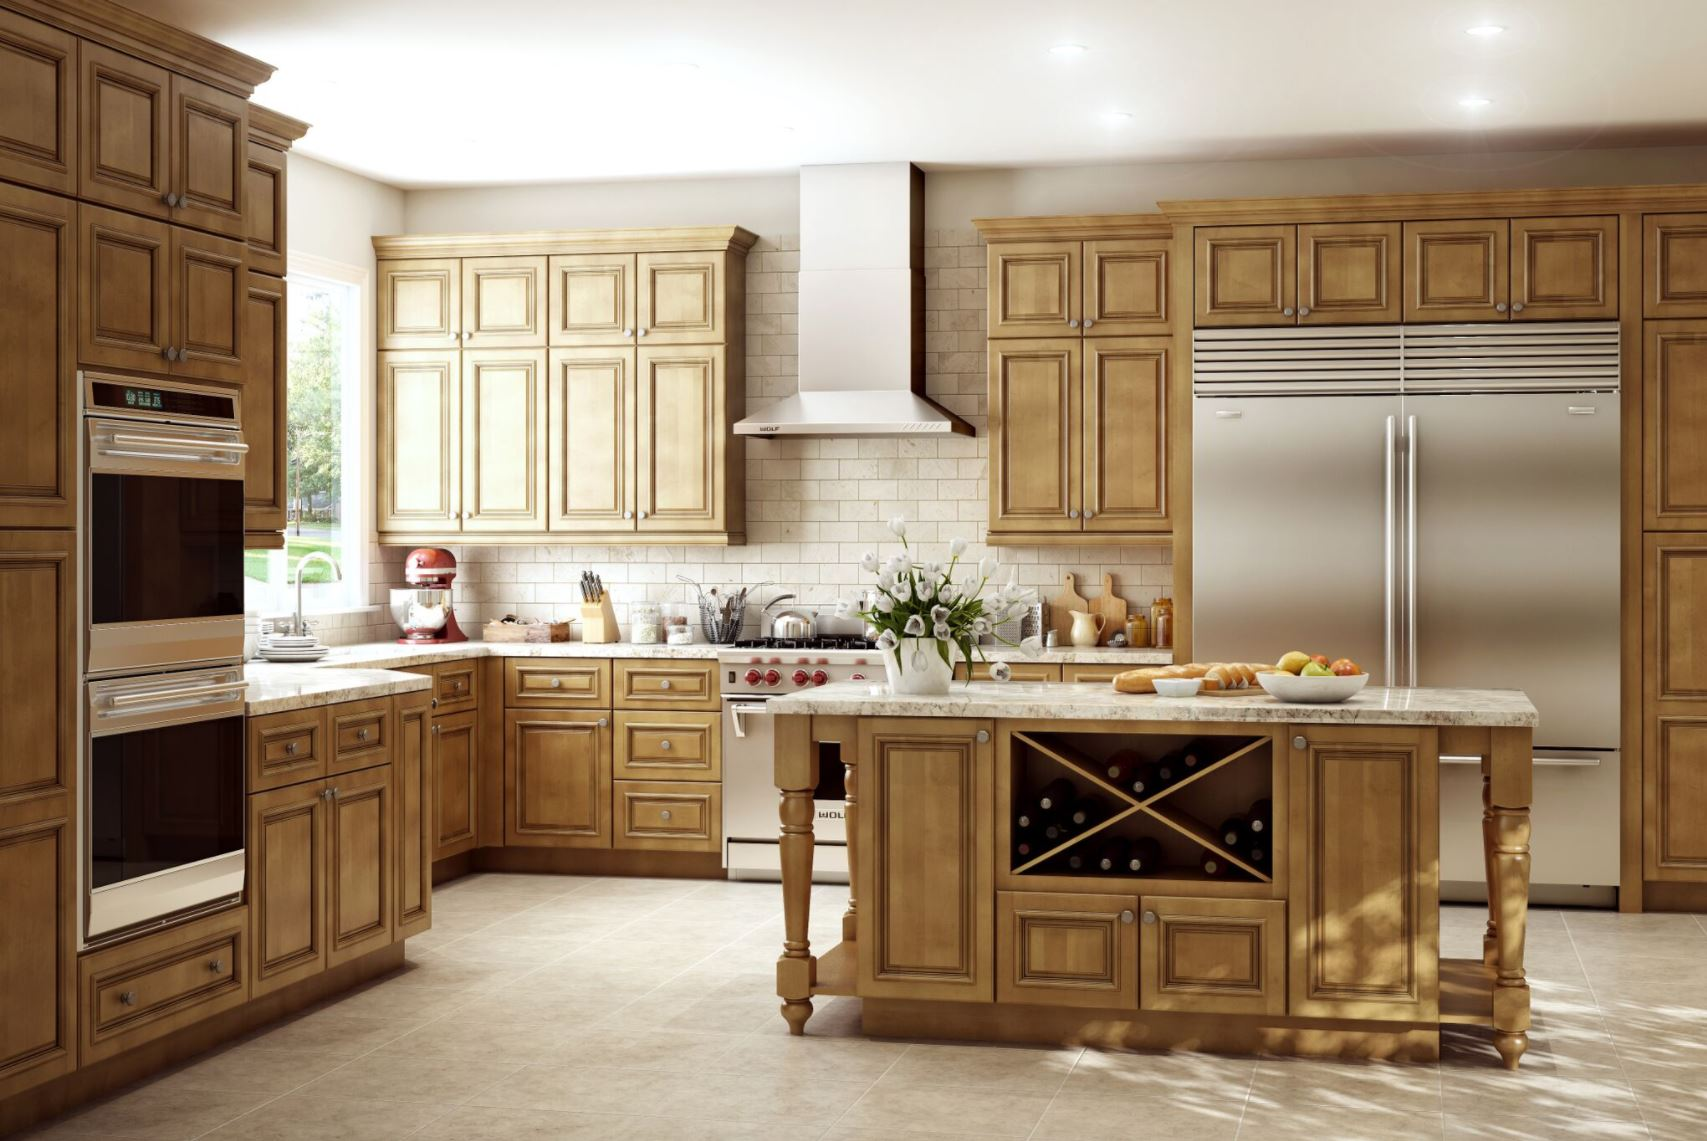 Clevedon base cabinets in toffee glaze kitchen the home depot